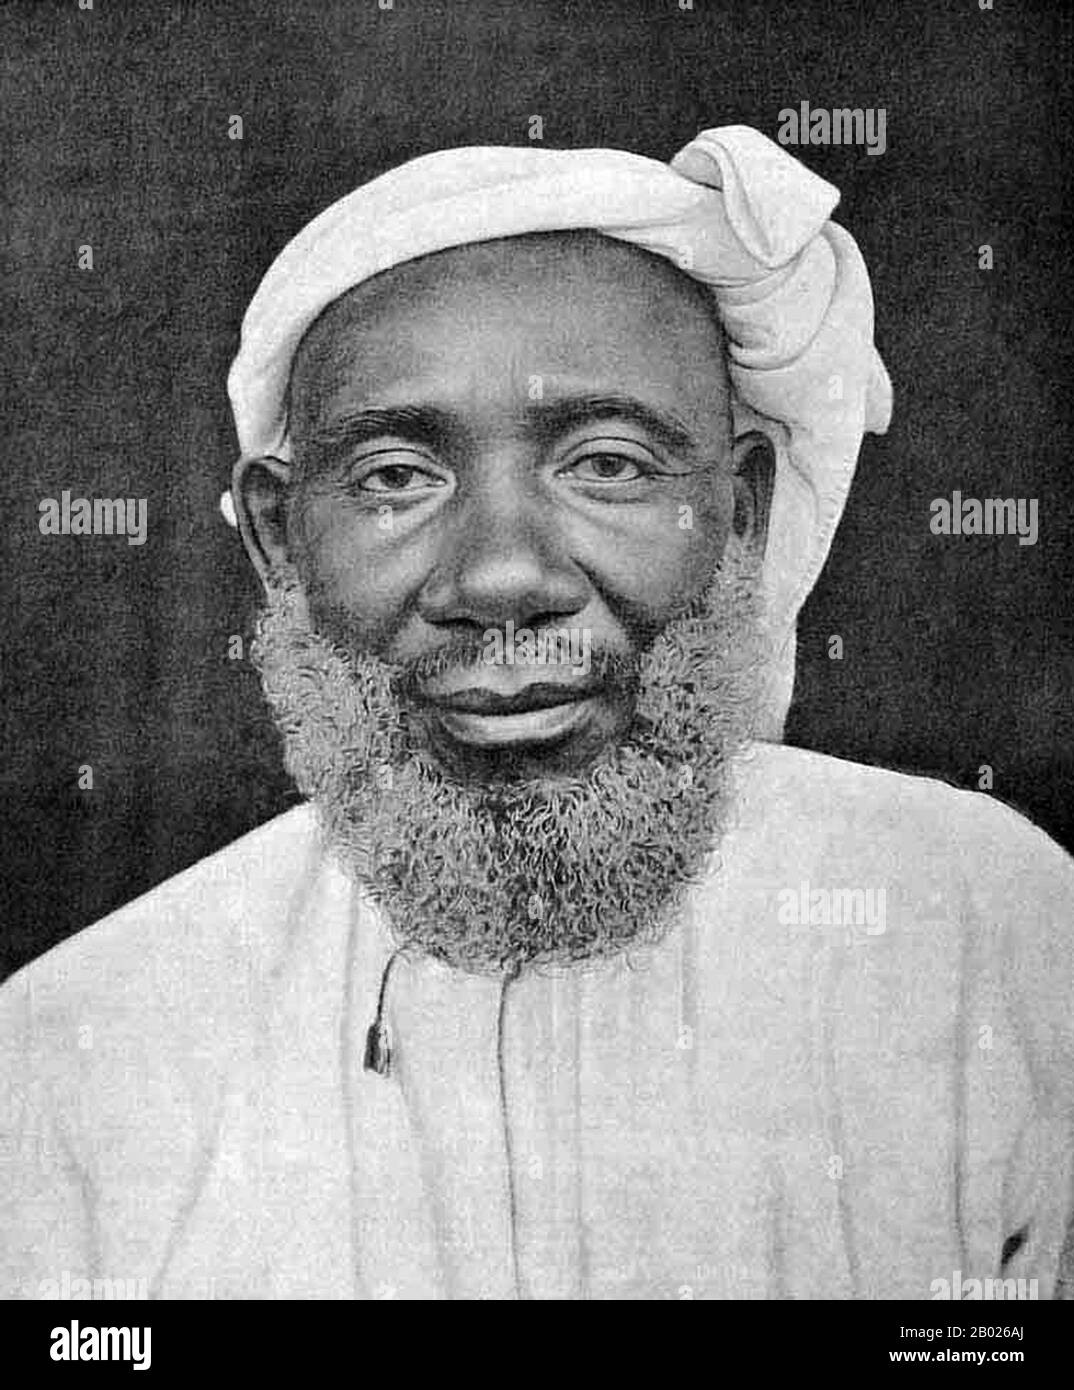 Tippu Tip or Tib (1837 – June 14, 1905), real name Hamad bin Muḥammad bin Jumah bin Rajab bin Muḥammad bin Sa'īd al-Murghabī, (Arabic: حمد بن محمد بن جمعة بن رجب بن محمد بن سعيد المرجبي), was a Swahili-Zanzibari trader. He was famously known by the natives of East Africa as Tippu Tib after the sounds that his many guns made. A notorious slave trader, plantation owner and governor, who worked for a succession of sultans of Zanzibar, he led many trading expeditions into Central Africa, involving the slave trade and ivory trade. He constructed profitable trading posts that reached deep into Cent Stock Photo